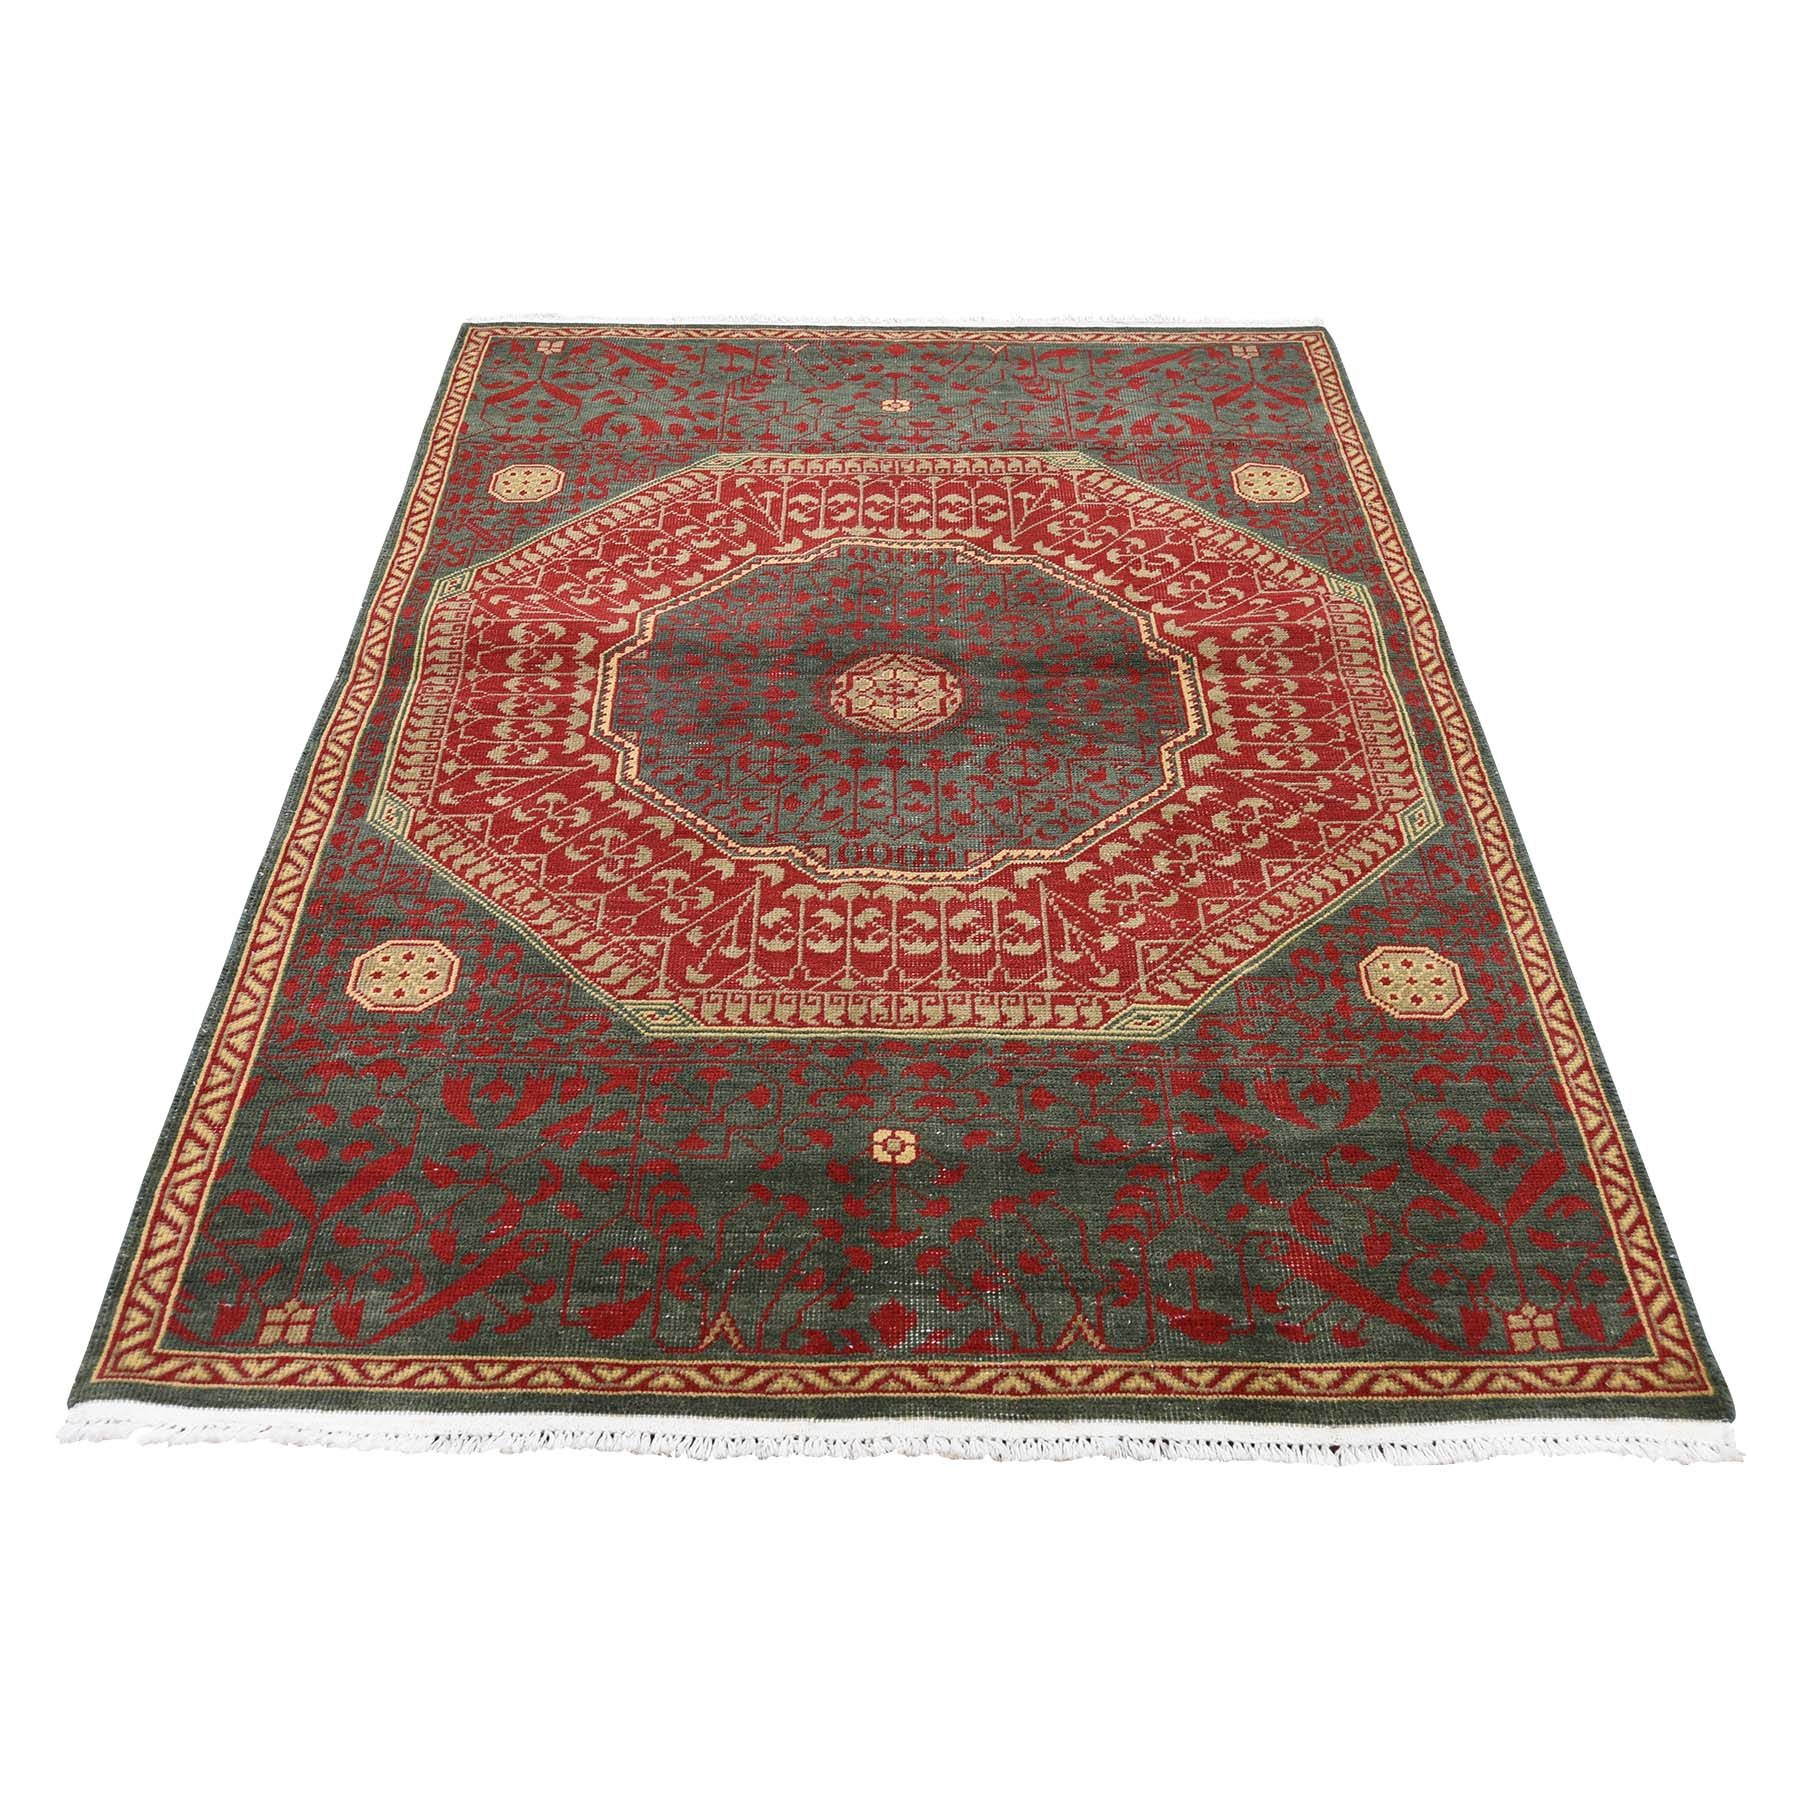 Intricate Collection Hand Knotted Green Rug No: 0188160